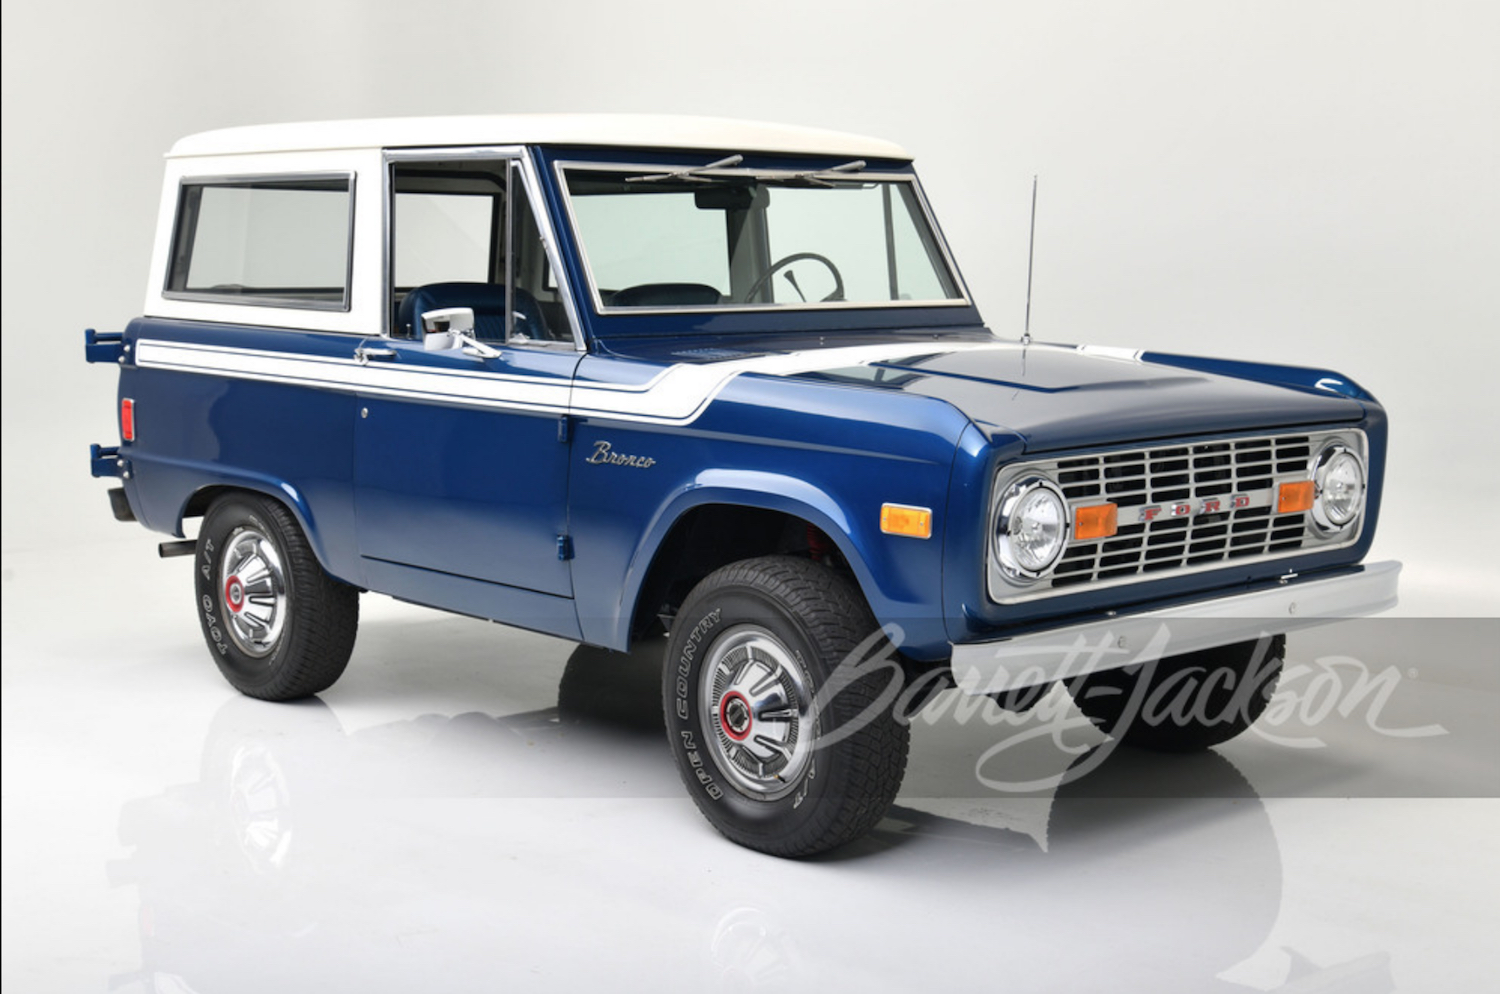 original first gen generation bronco ford barrett-jackson scottsdale